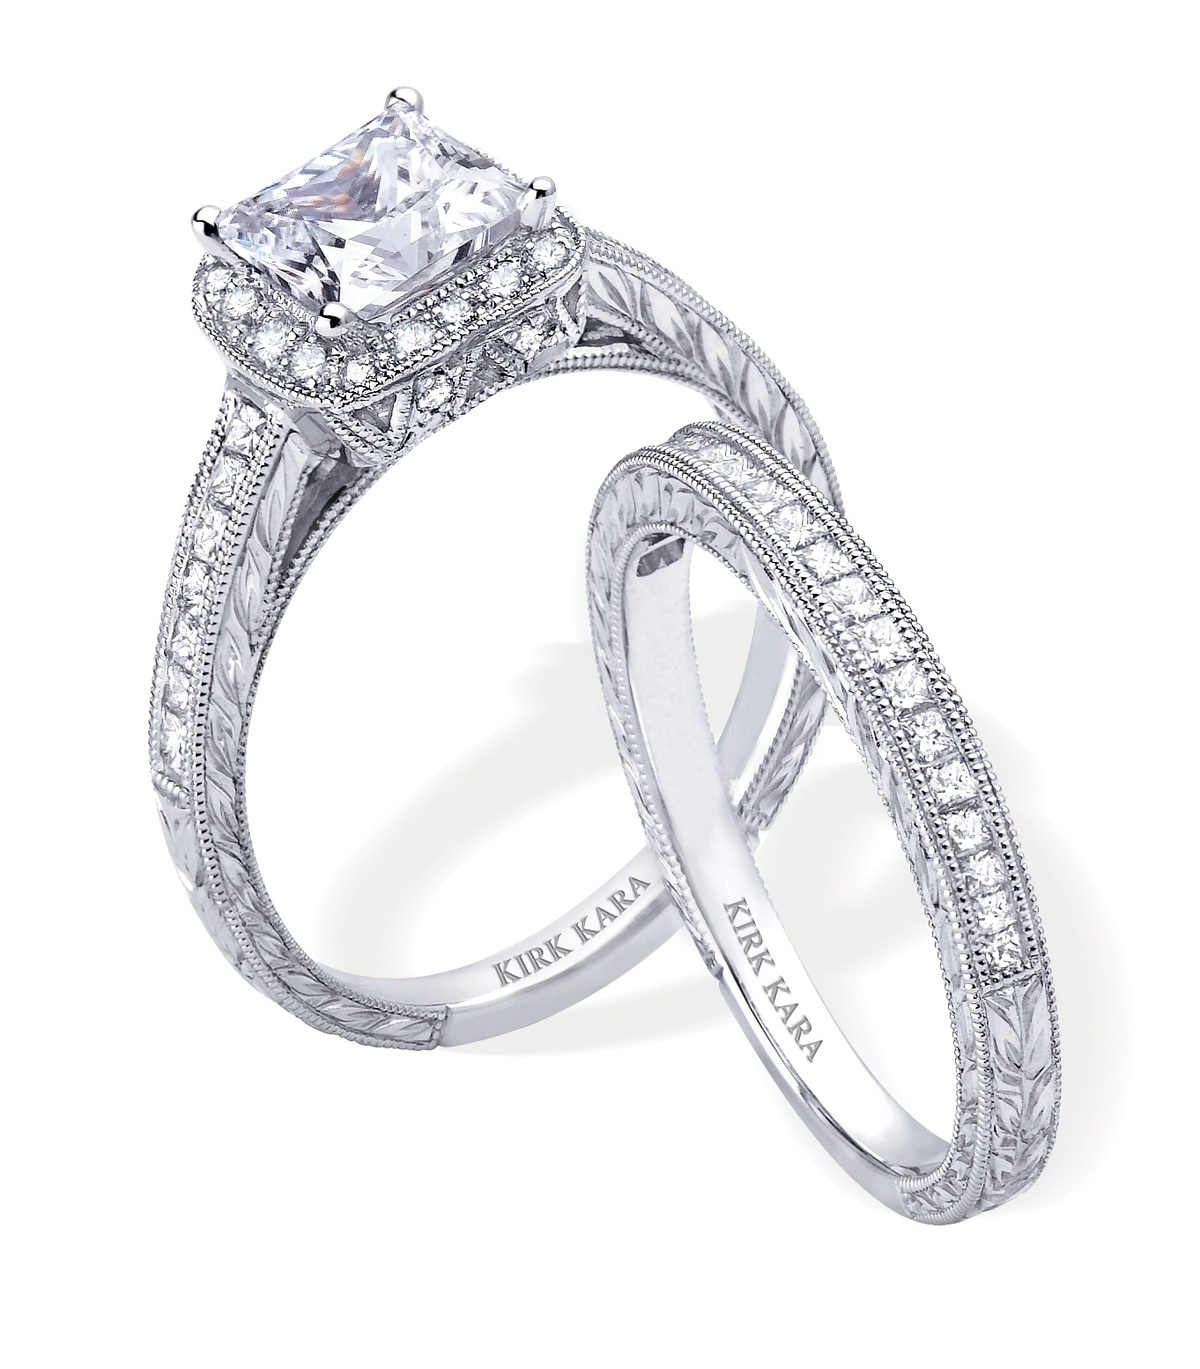 diamond engagement ring and wedding band set by kirk kara - Affordable Wedding Ring Sets